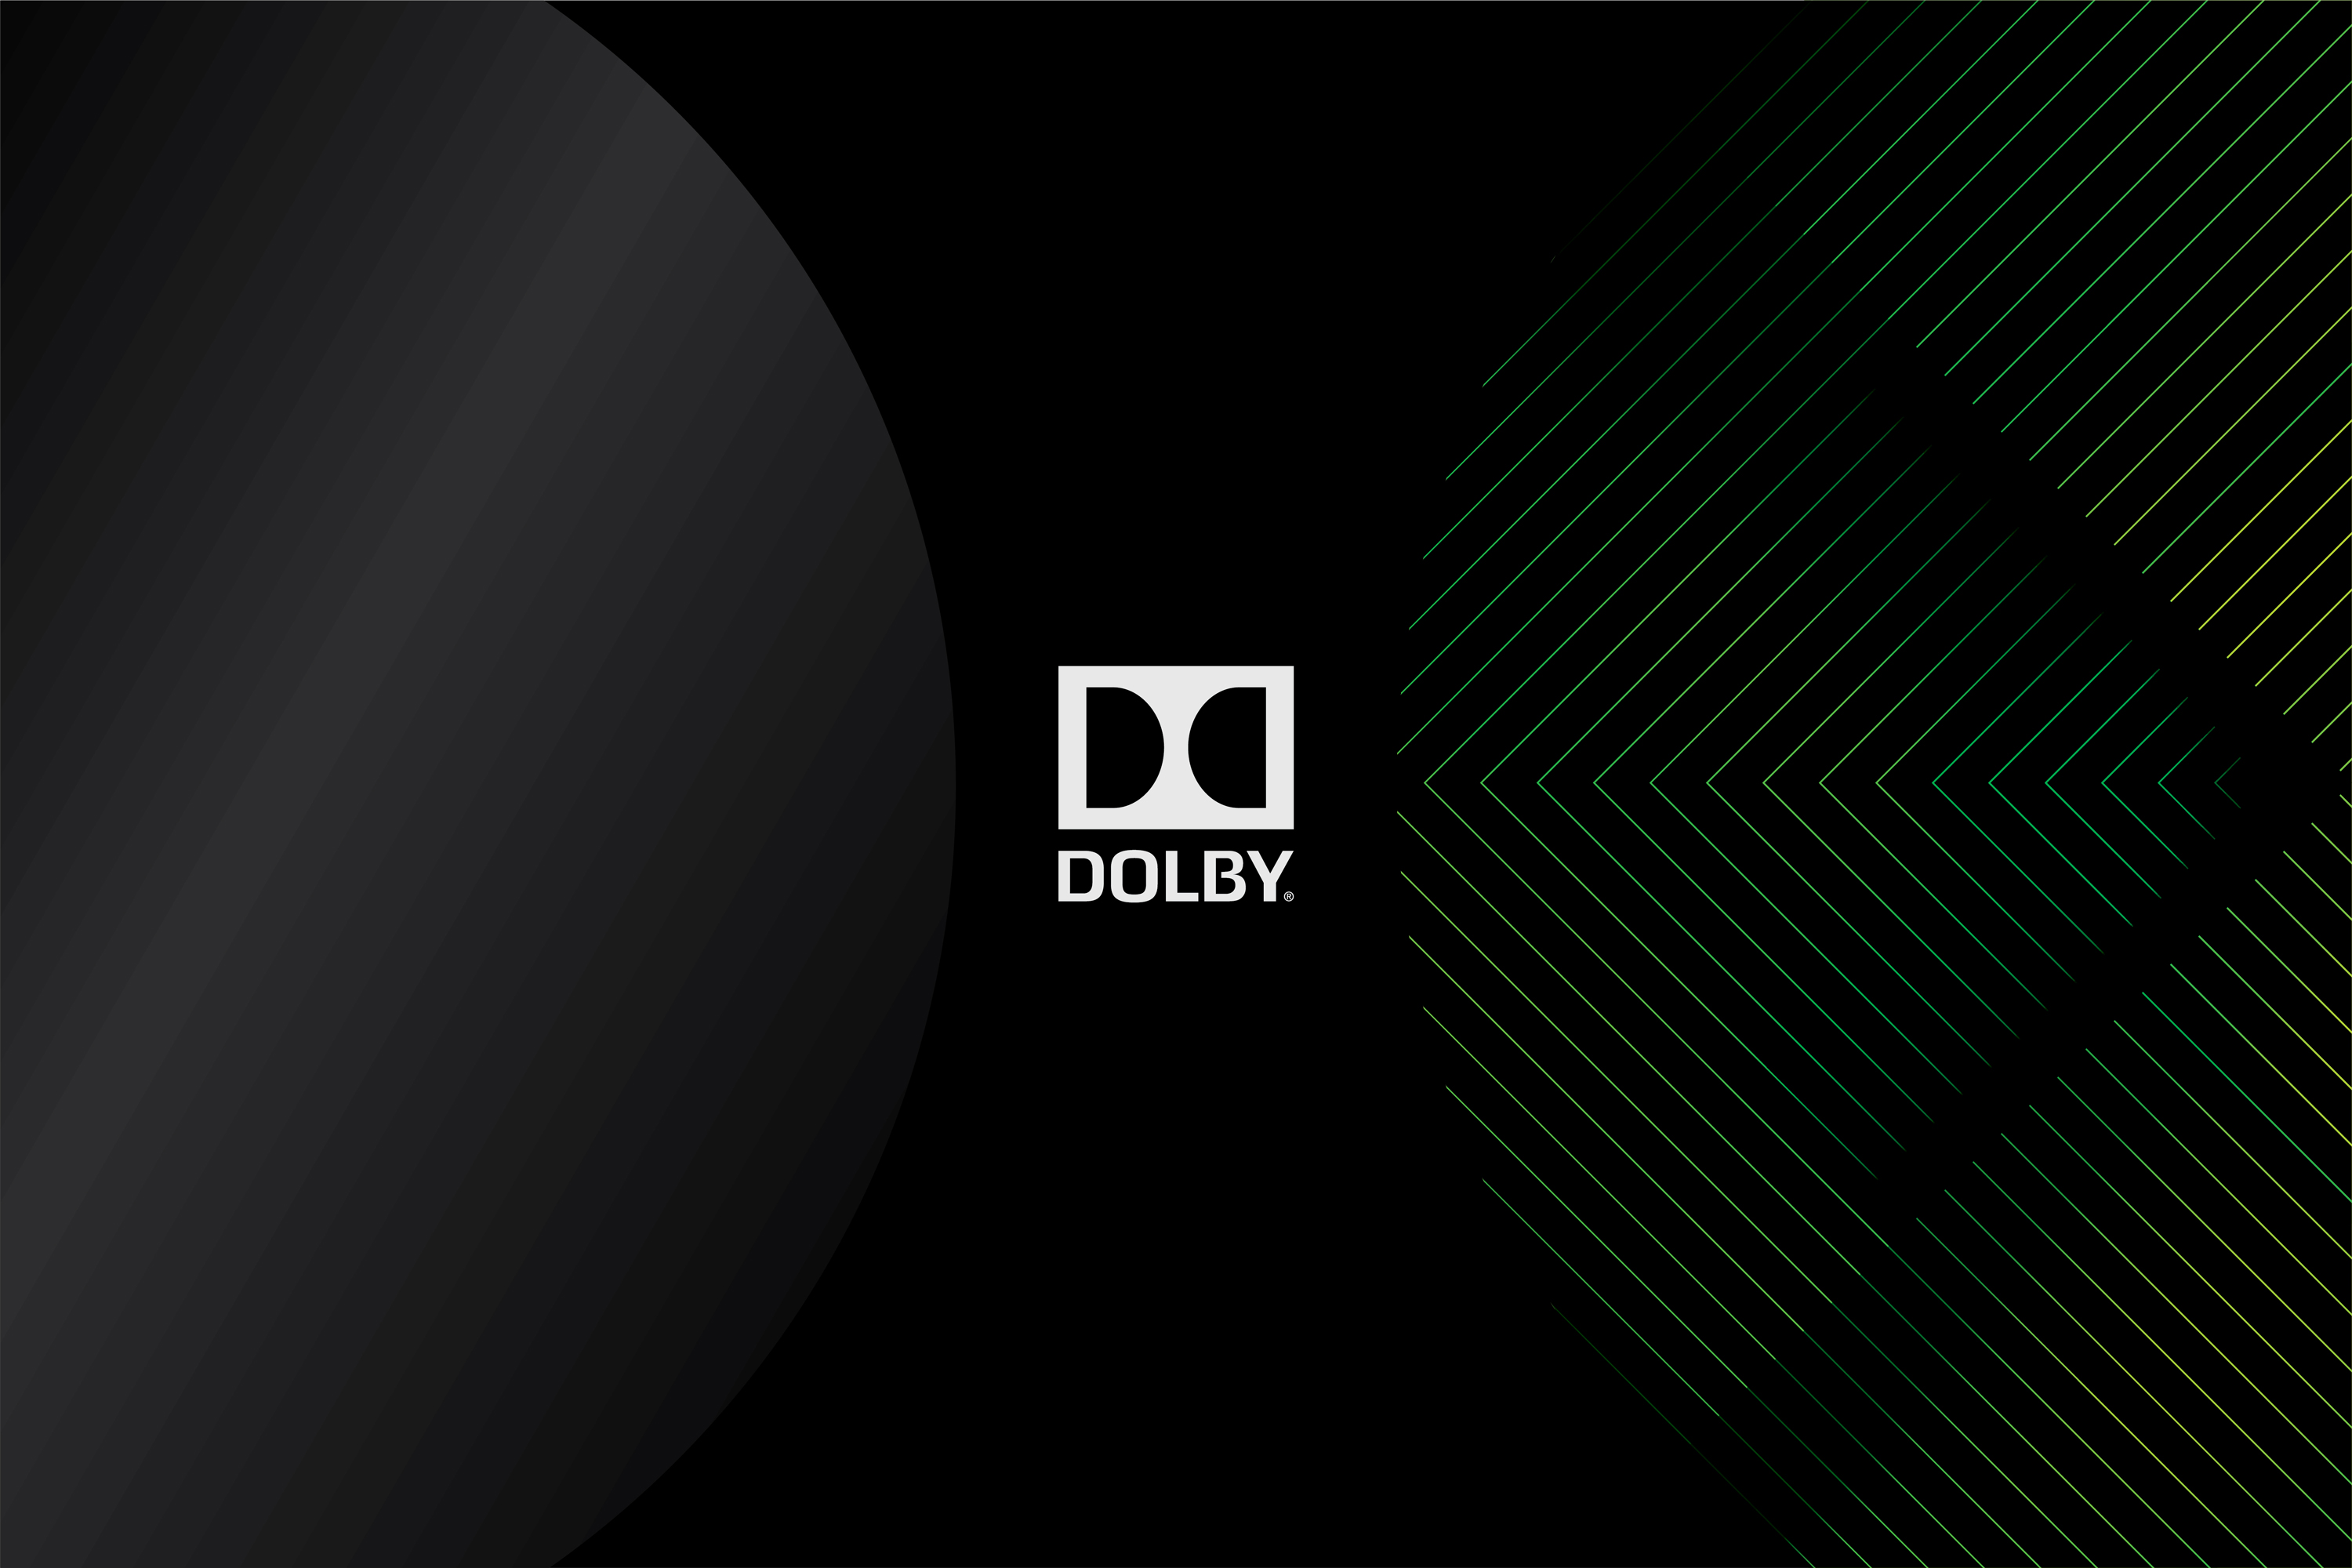 Dolby_Vision_Double_D